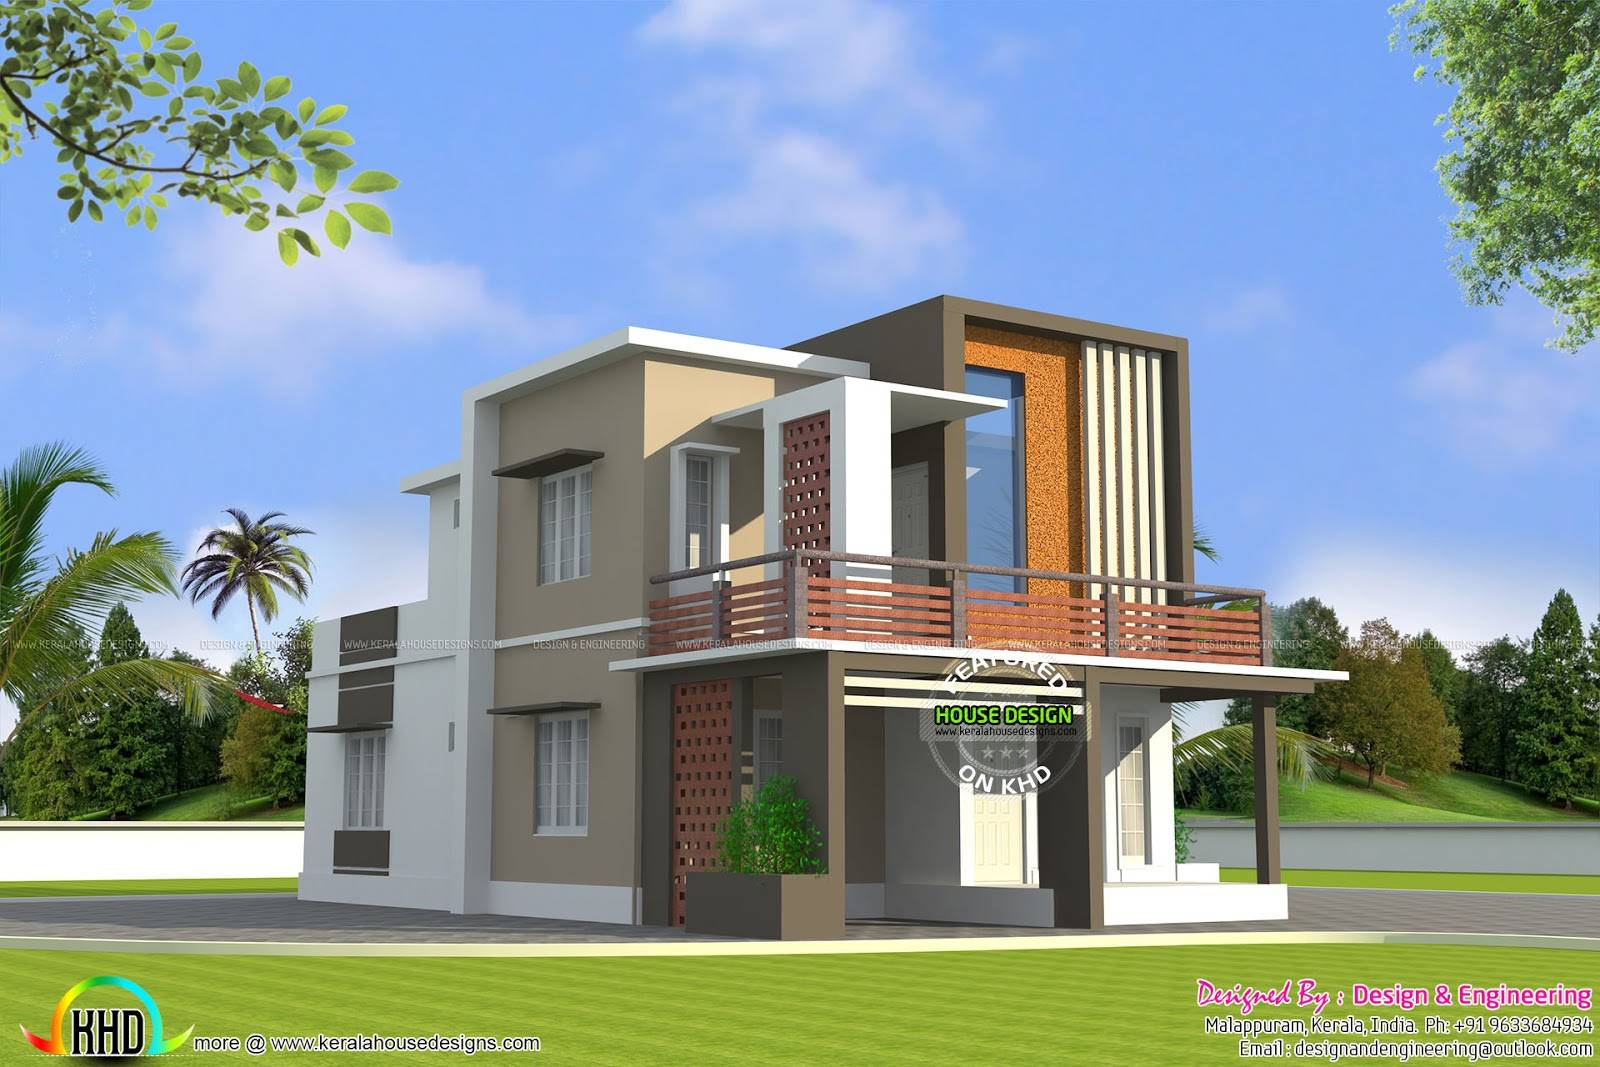 house plans in kerala style with photos with Designs Houses Outlook on 10287 furthermore Designs Houses Outlook also Nautilus Houseboats likewise Plan And Elevation likewise Simple Elevation House Plan In Below.